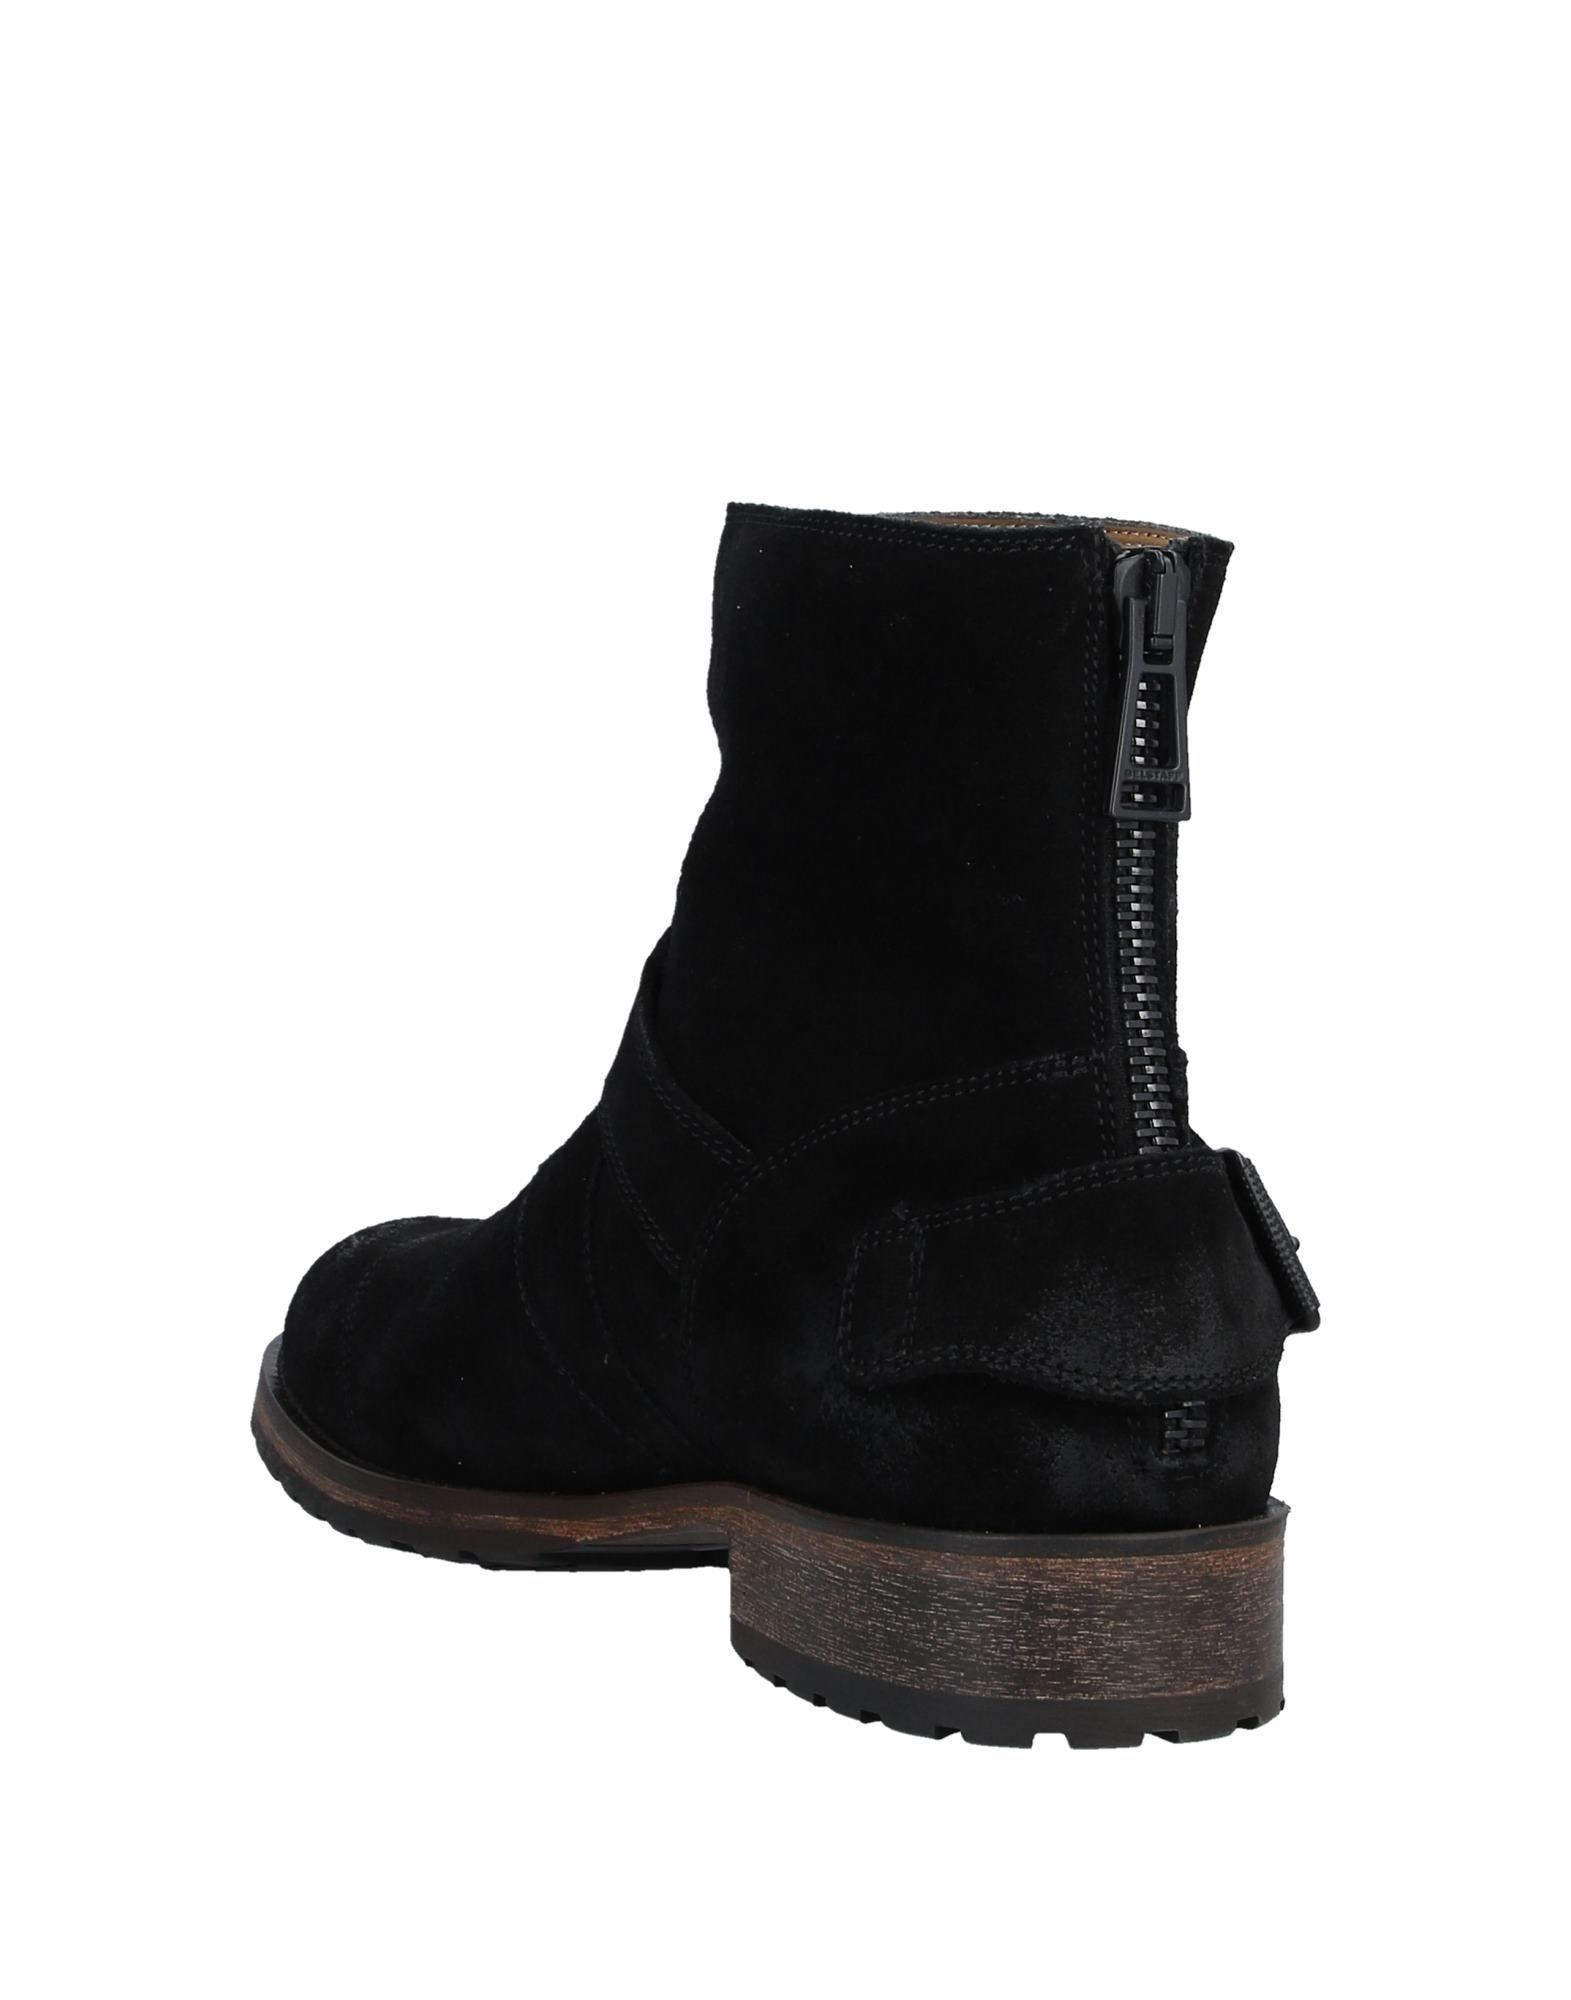 Belstaff Black Leather Ankle Boots